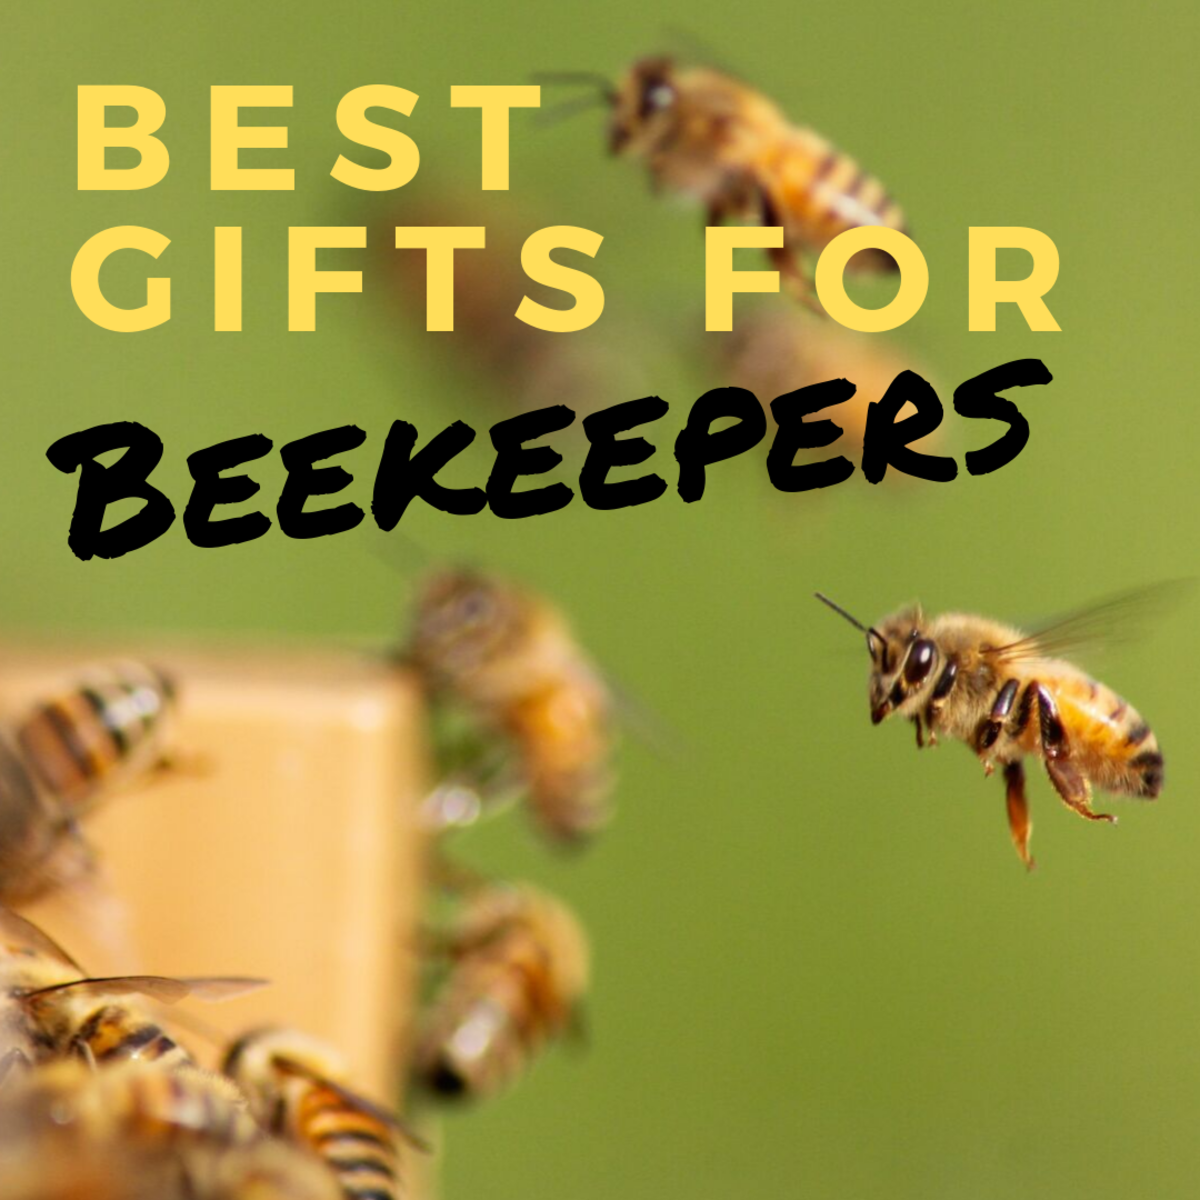 Best Gifts for Beekeepers